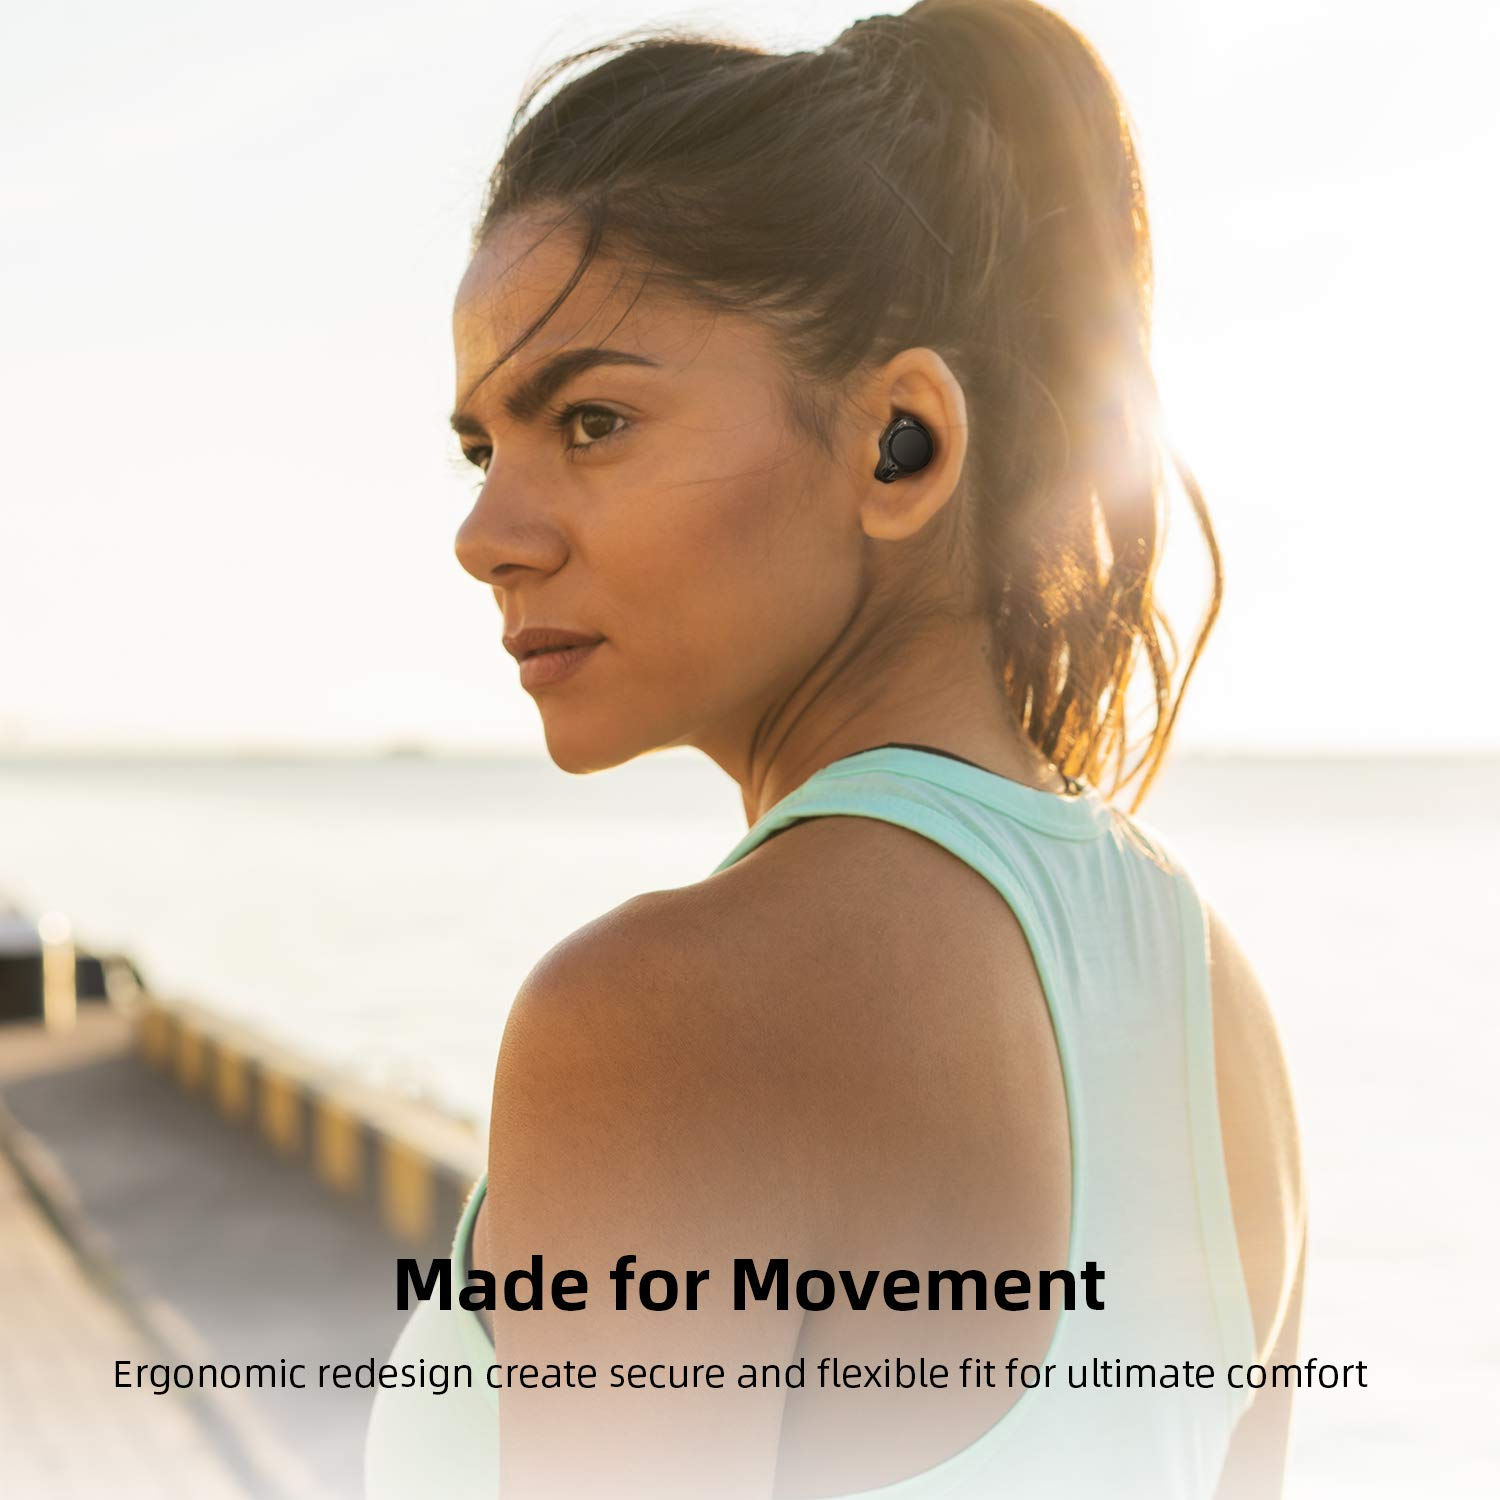 Bluetooth 5.0 Wireless Headphones, ENACFIRE Future Plus Wireless Bluetooth Earbuds with 104 Cycle Playing Time IPX5 Waterproof for Sport One-Key Control Hi-Fi Sound Quality Stable Connection by ENACFIRE (Image #7)